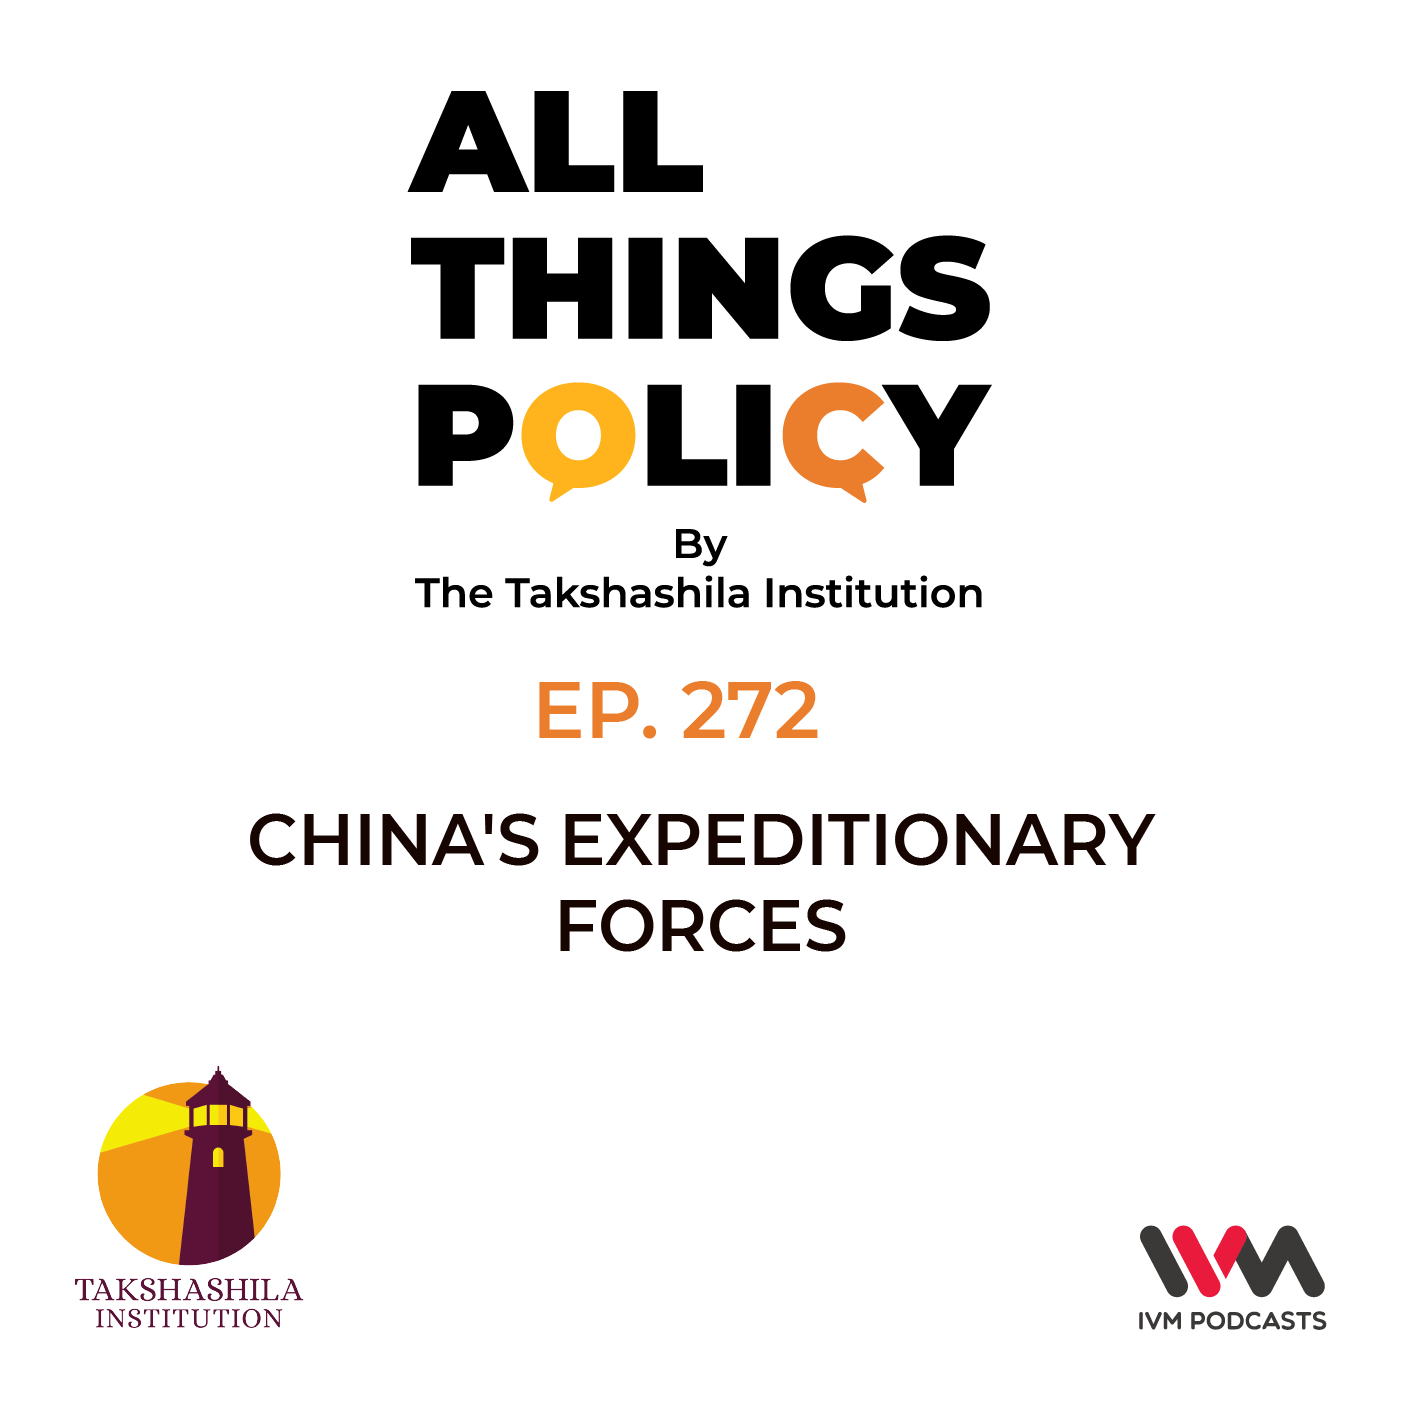 Ep. 272 China's Expeditionary Forces